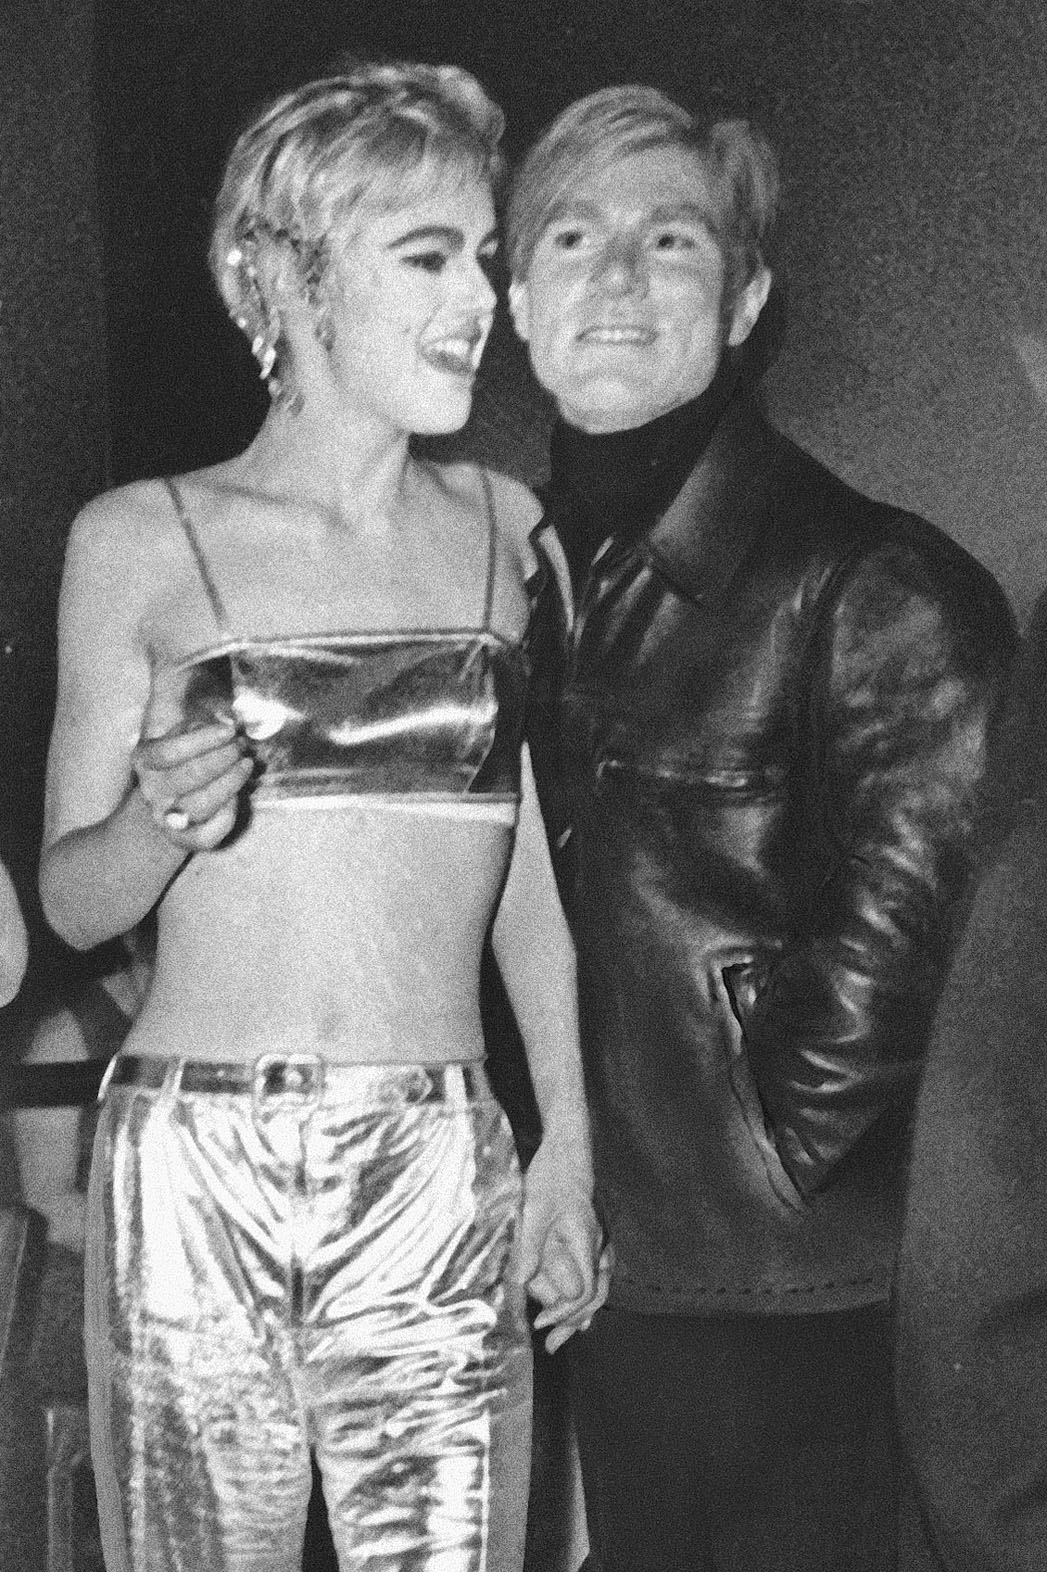 Edie Sedgwick and Andy Warhol - P 2014